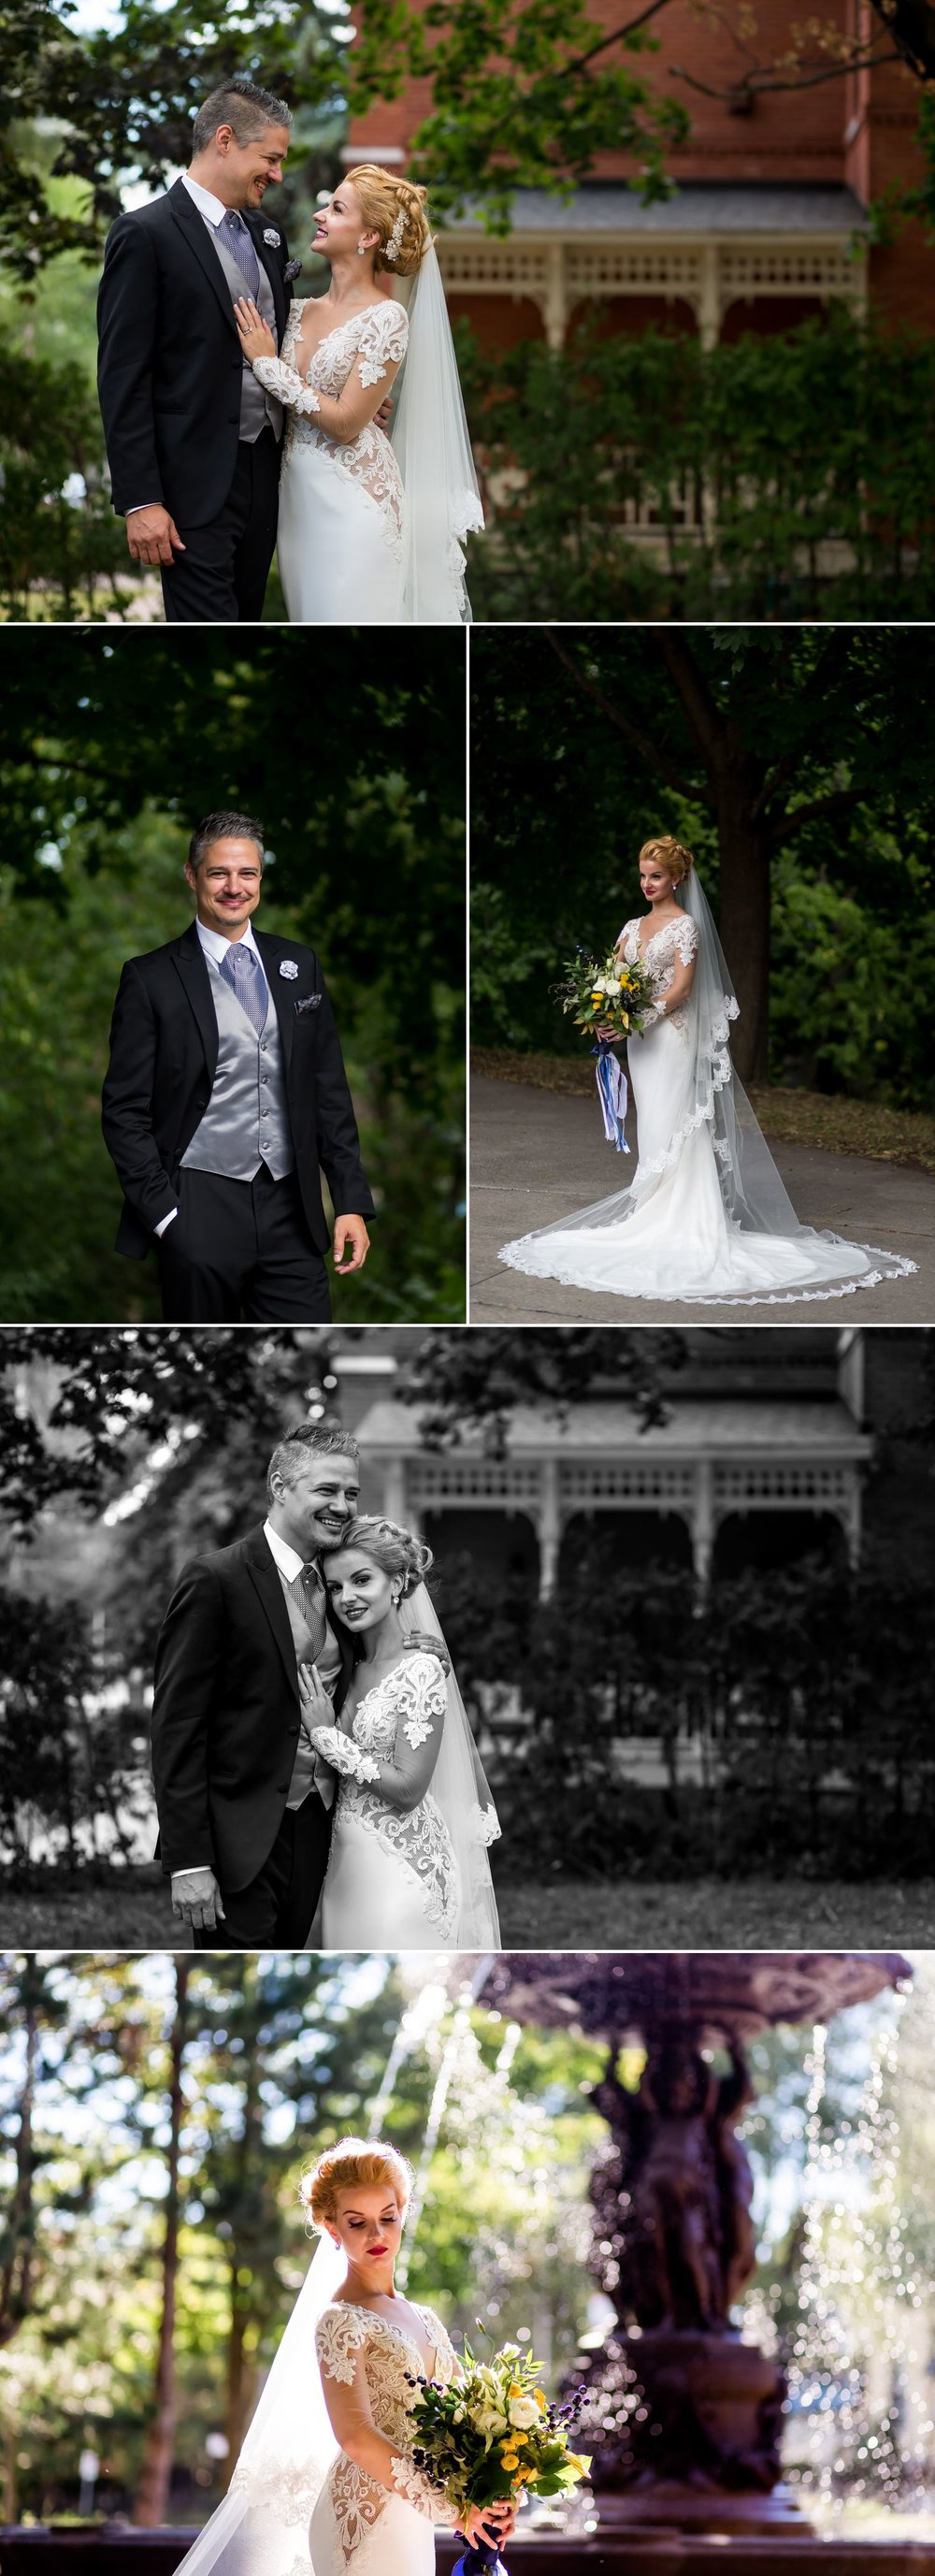 Portraits of the bride and groom after their wedding ceremony at Le Cordon Bleu